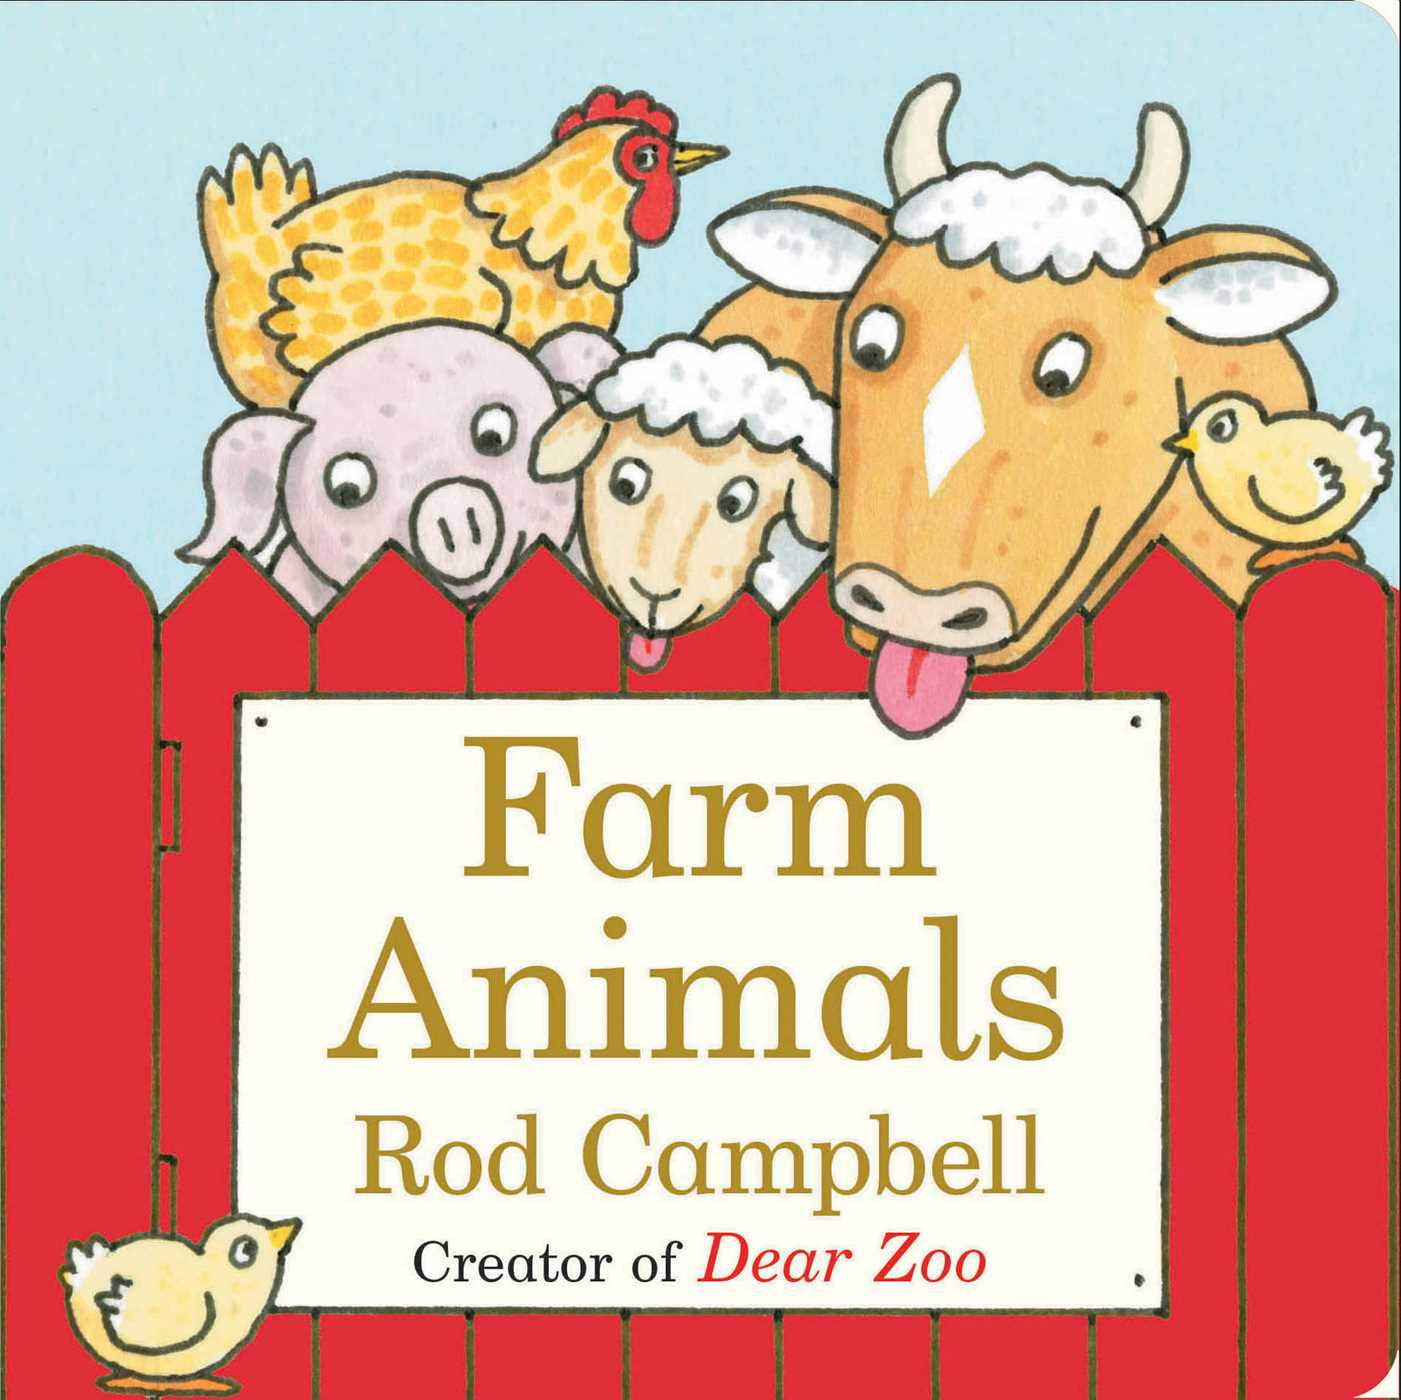 Farm Animals By Rod Campbell - image 3 of 3